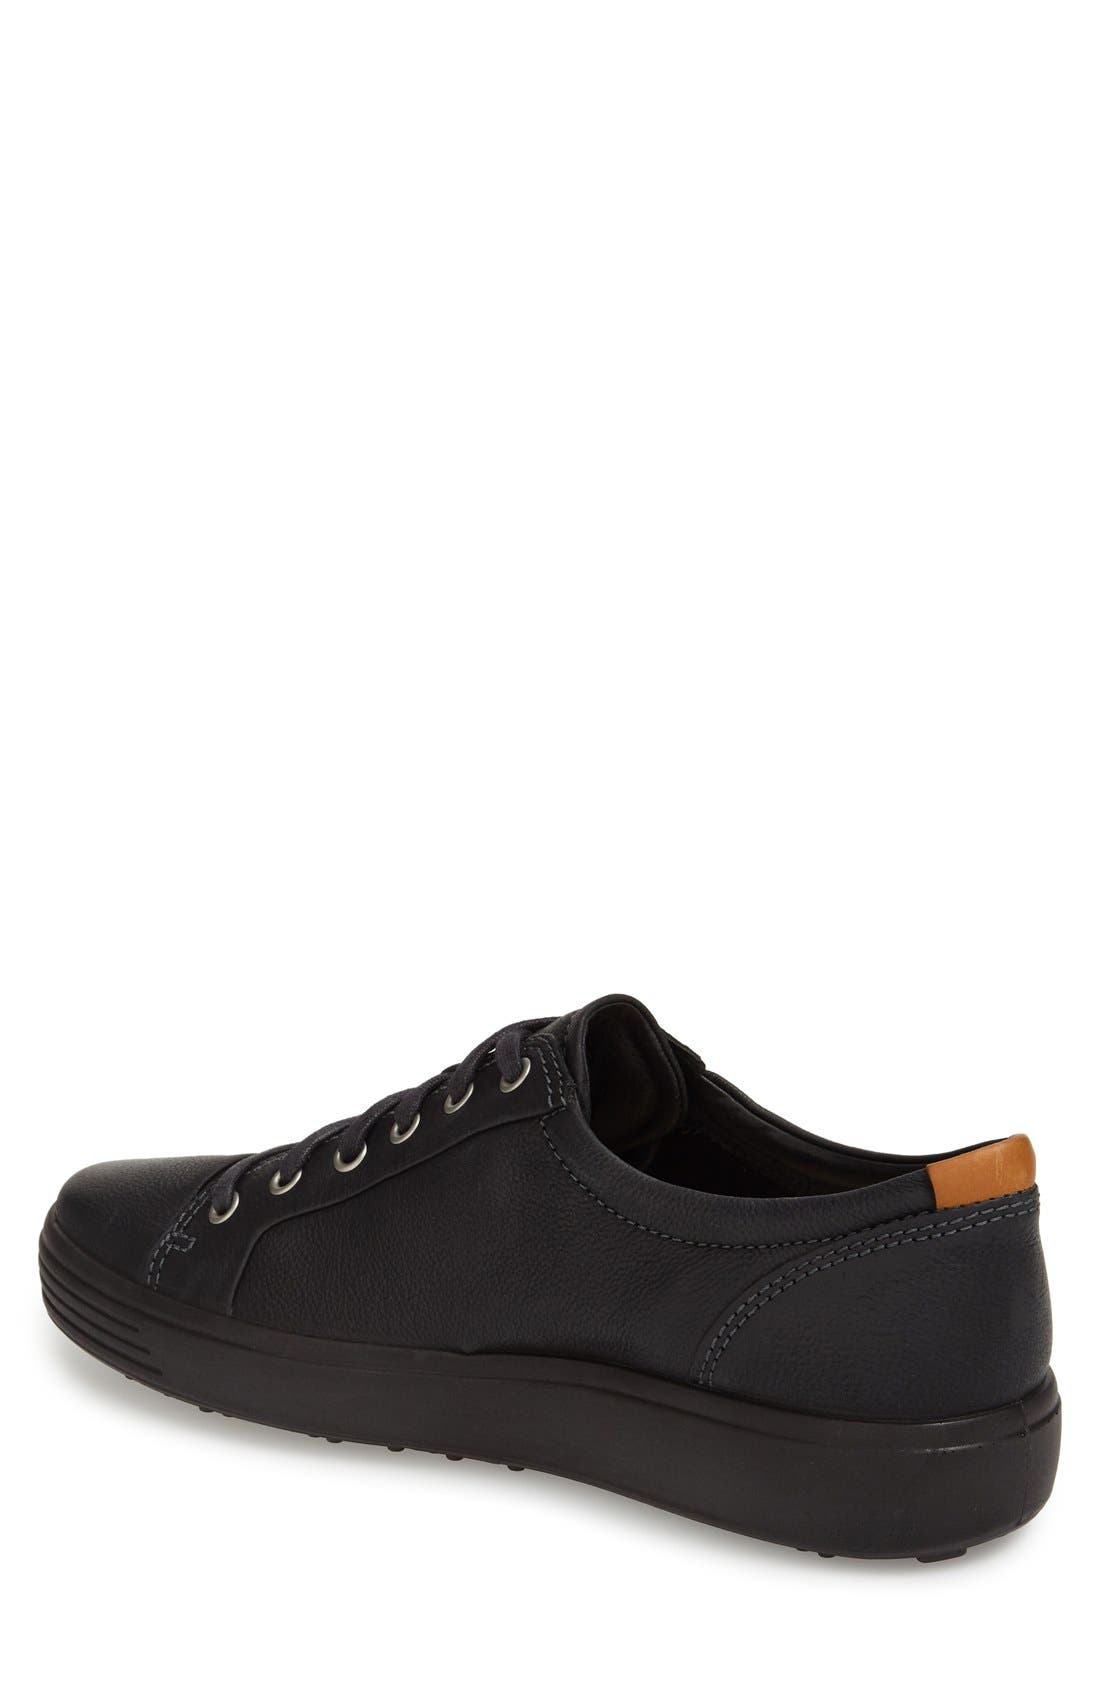 Soft VII Lace-Up Sneaker,                             Alternate thumbnail 32, color,